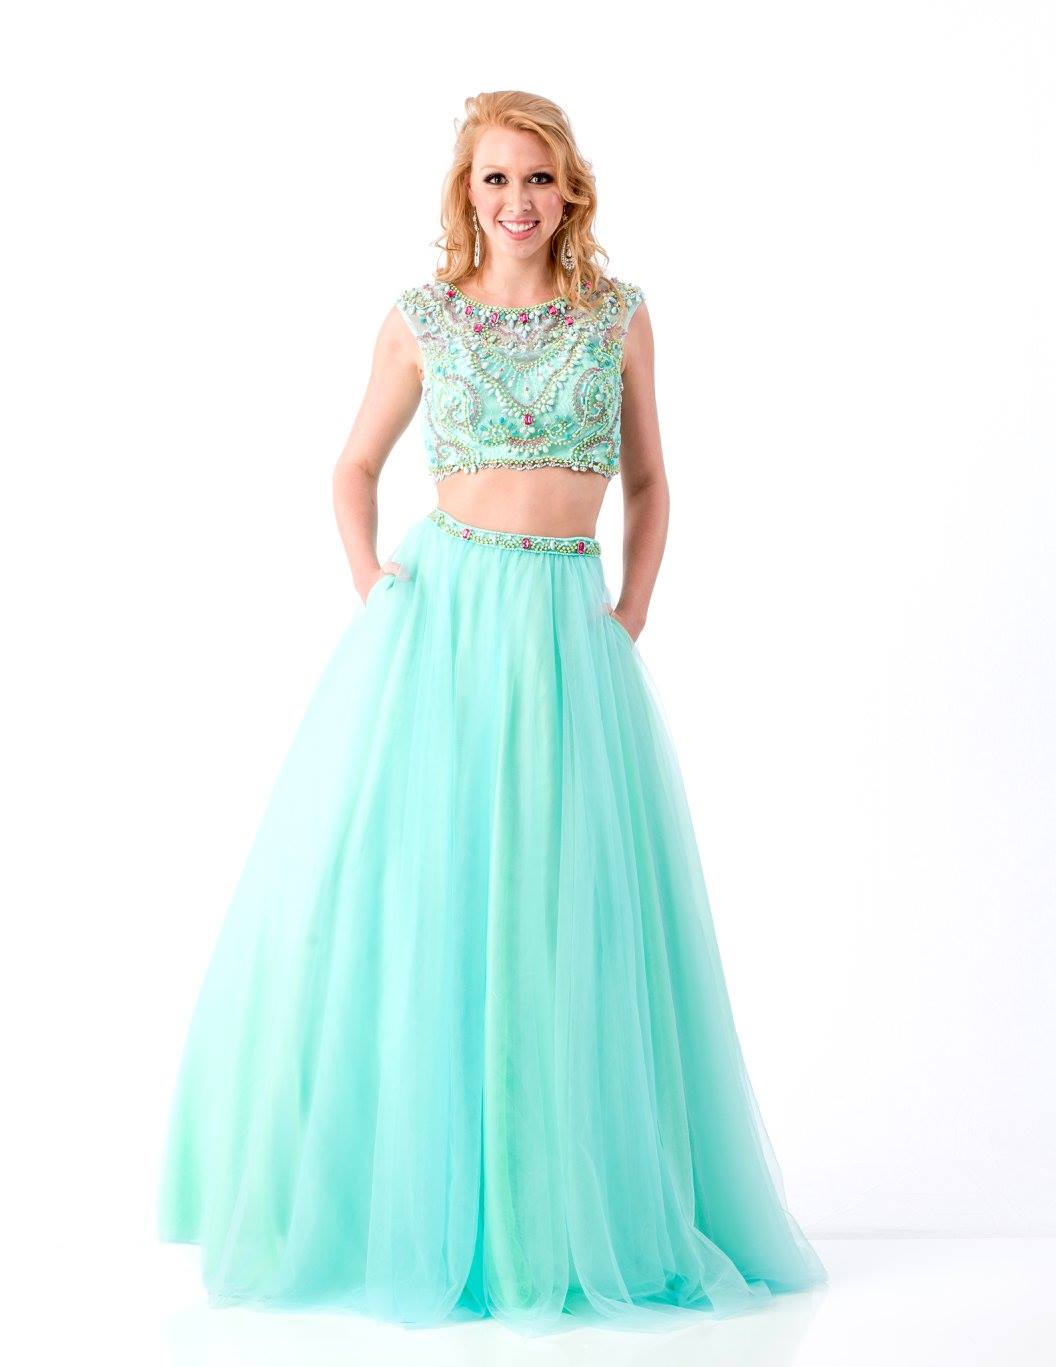 Homecoming Dress Stores In Michigan - KD Dress